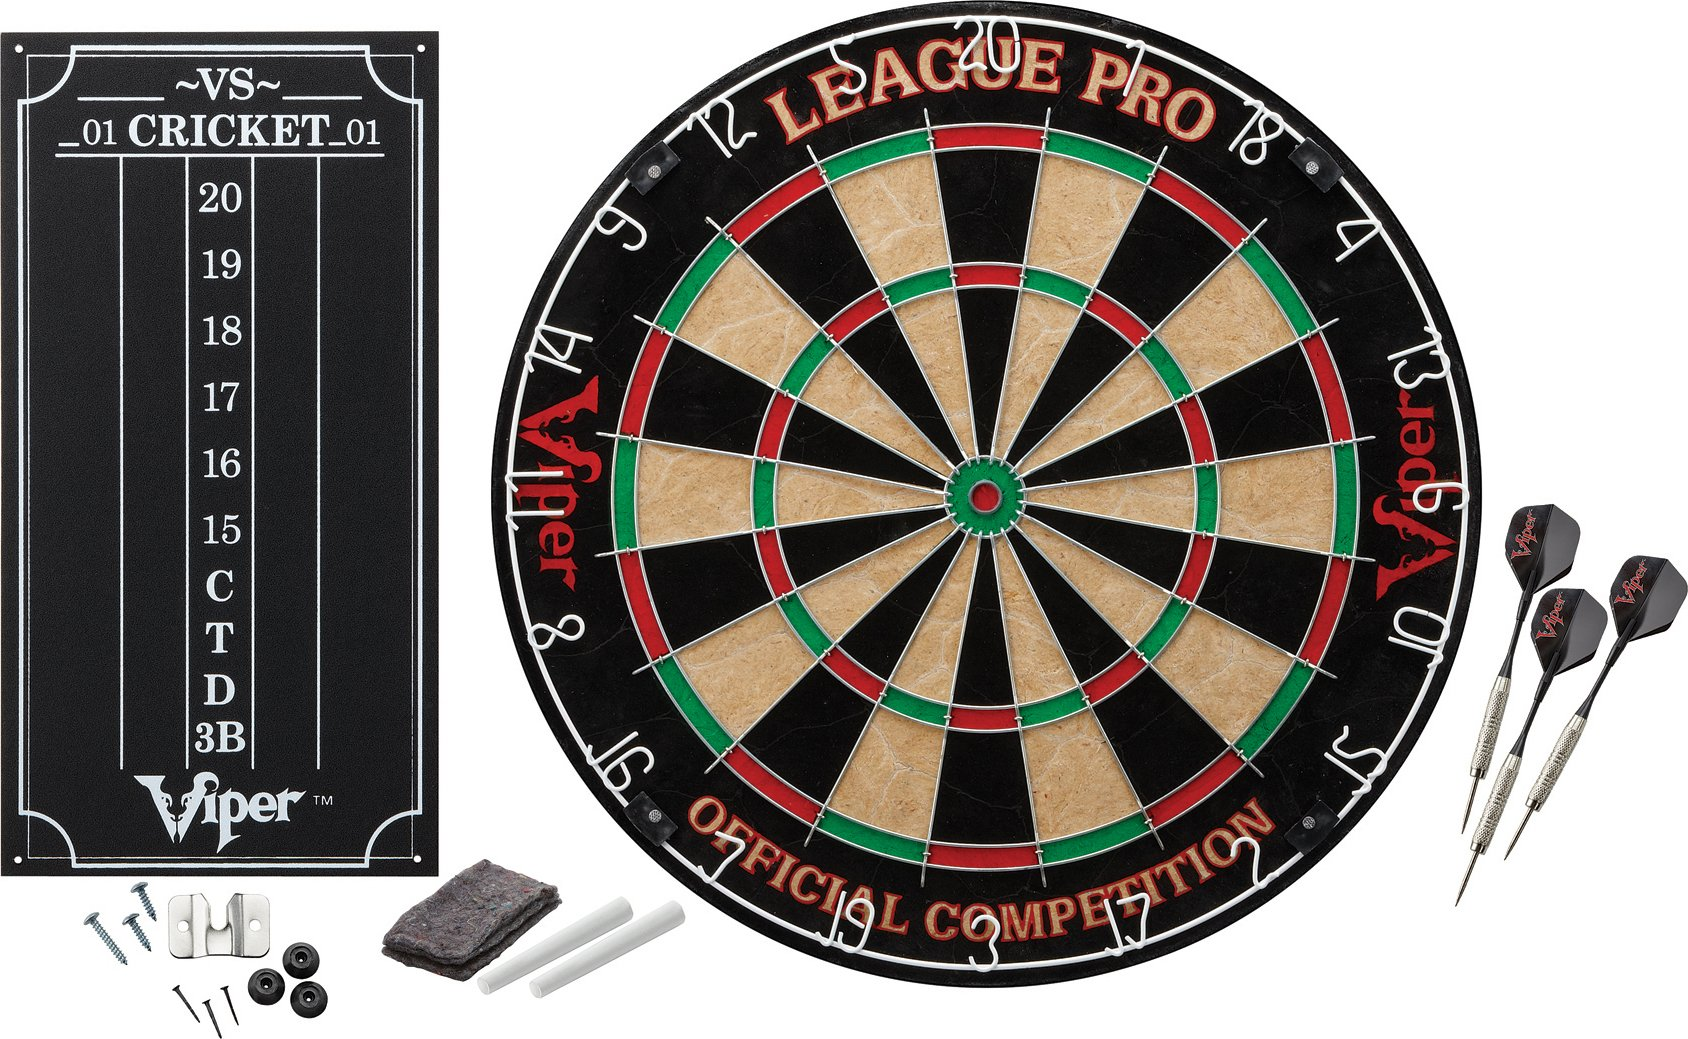 Viper League Pro Regulation Bristle Steel Tip Dartboard Starter Set with Staple-Free Bullseye, Galvanized Metal Radial Spider Wire; High-Grade Compressed Sisal Board with Rotating Number Ring for Extending Life, Includes Chalk Cricket Scoreboard and Steel by Viper by GLD Products